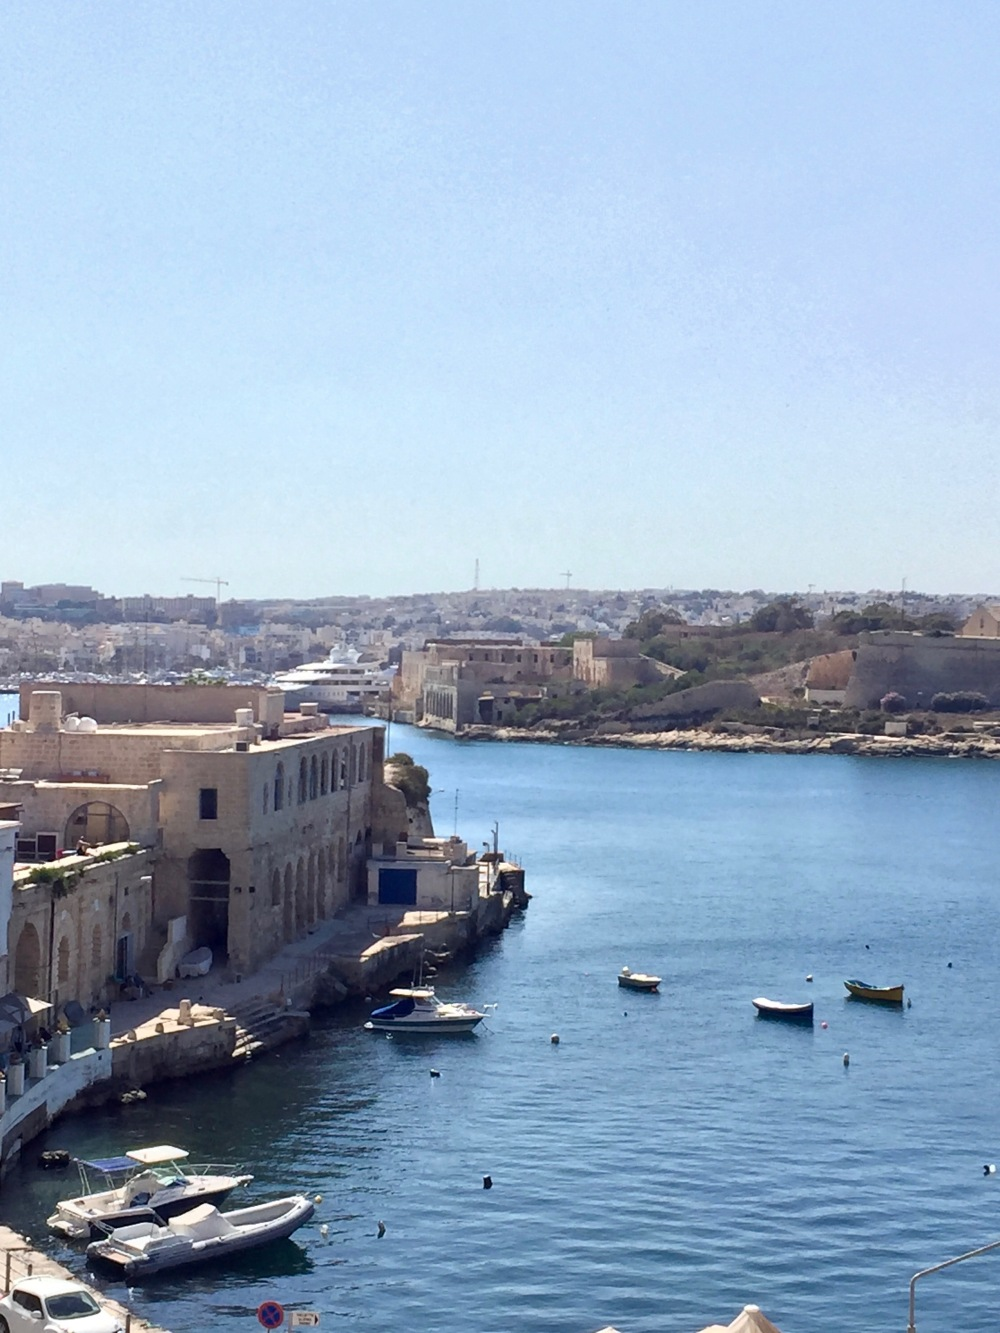 You keep me on guard, Malta.